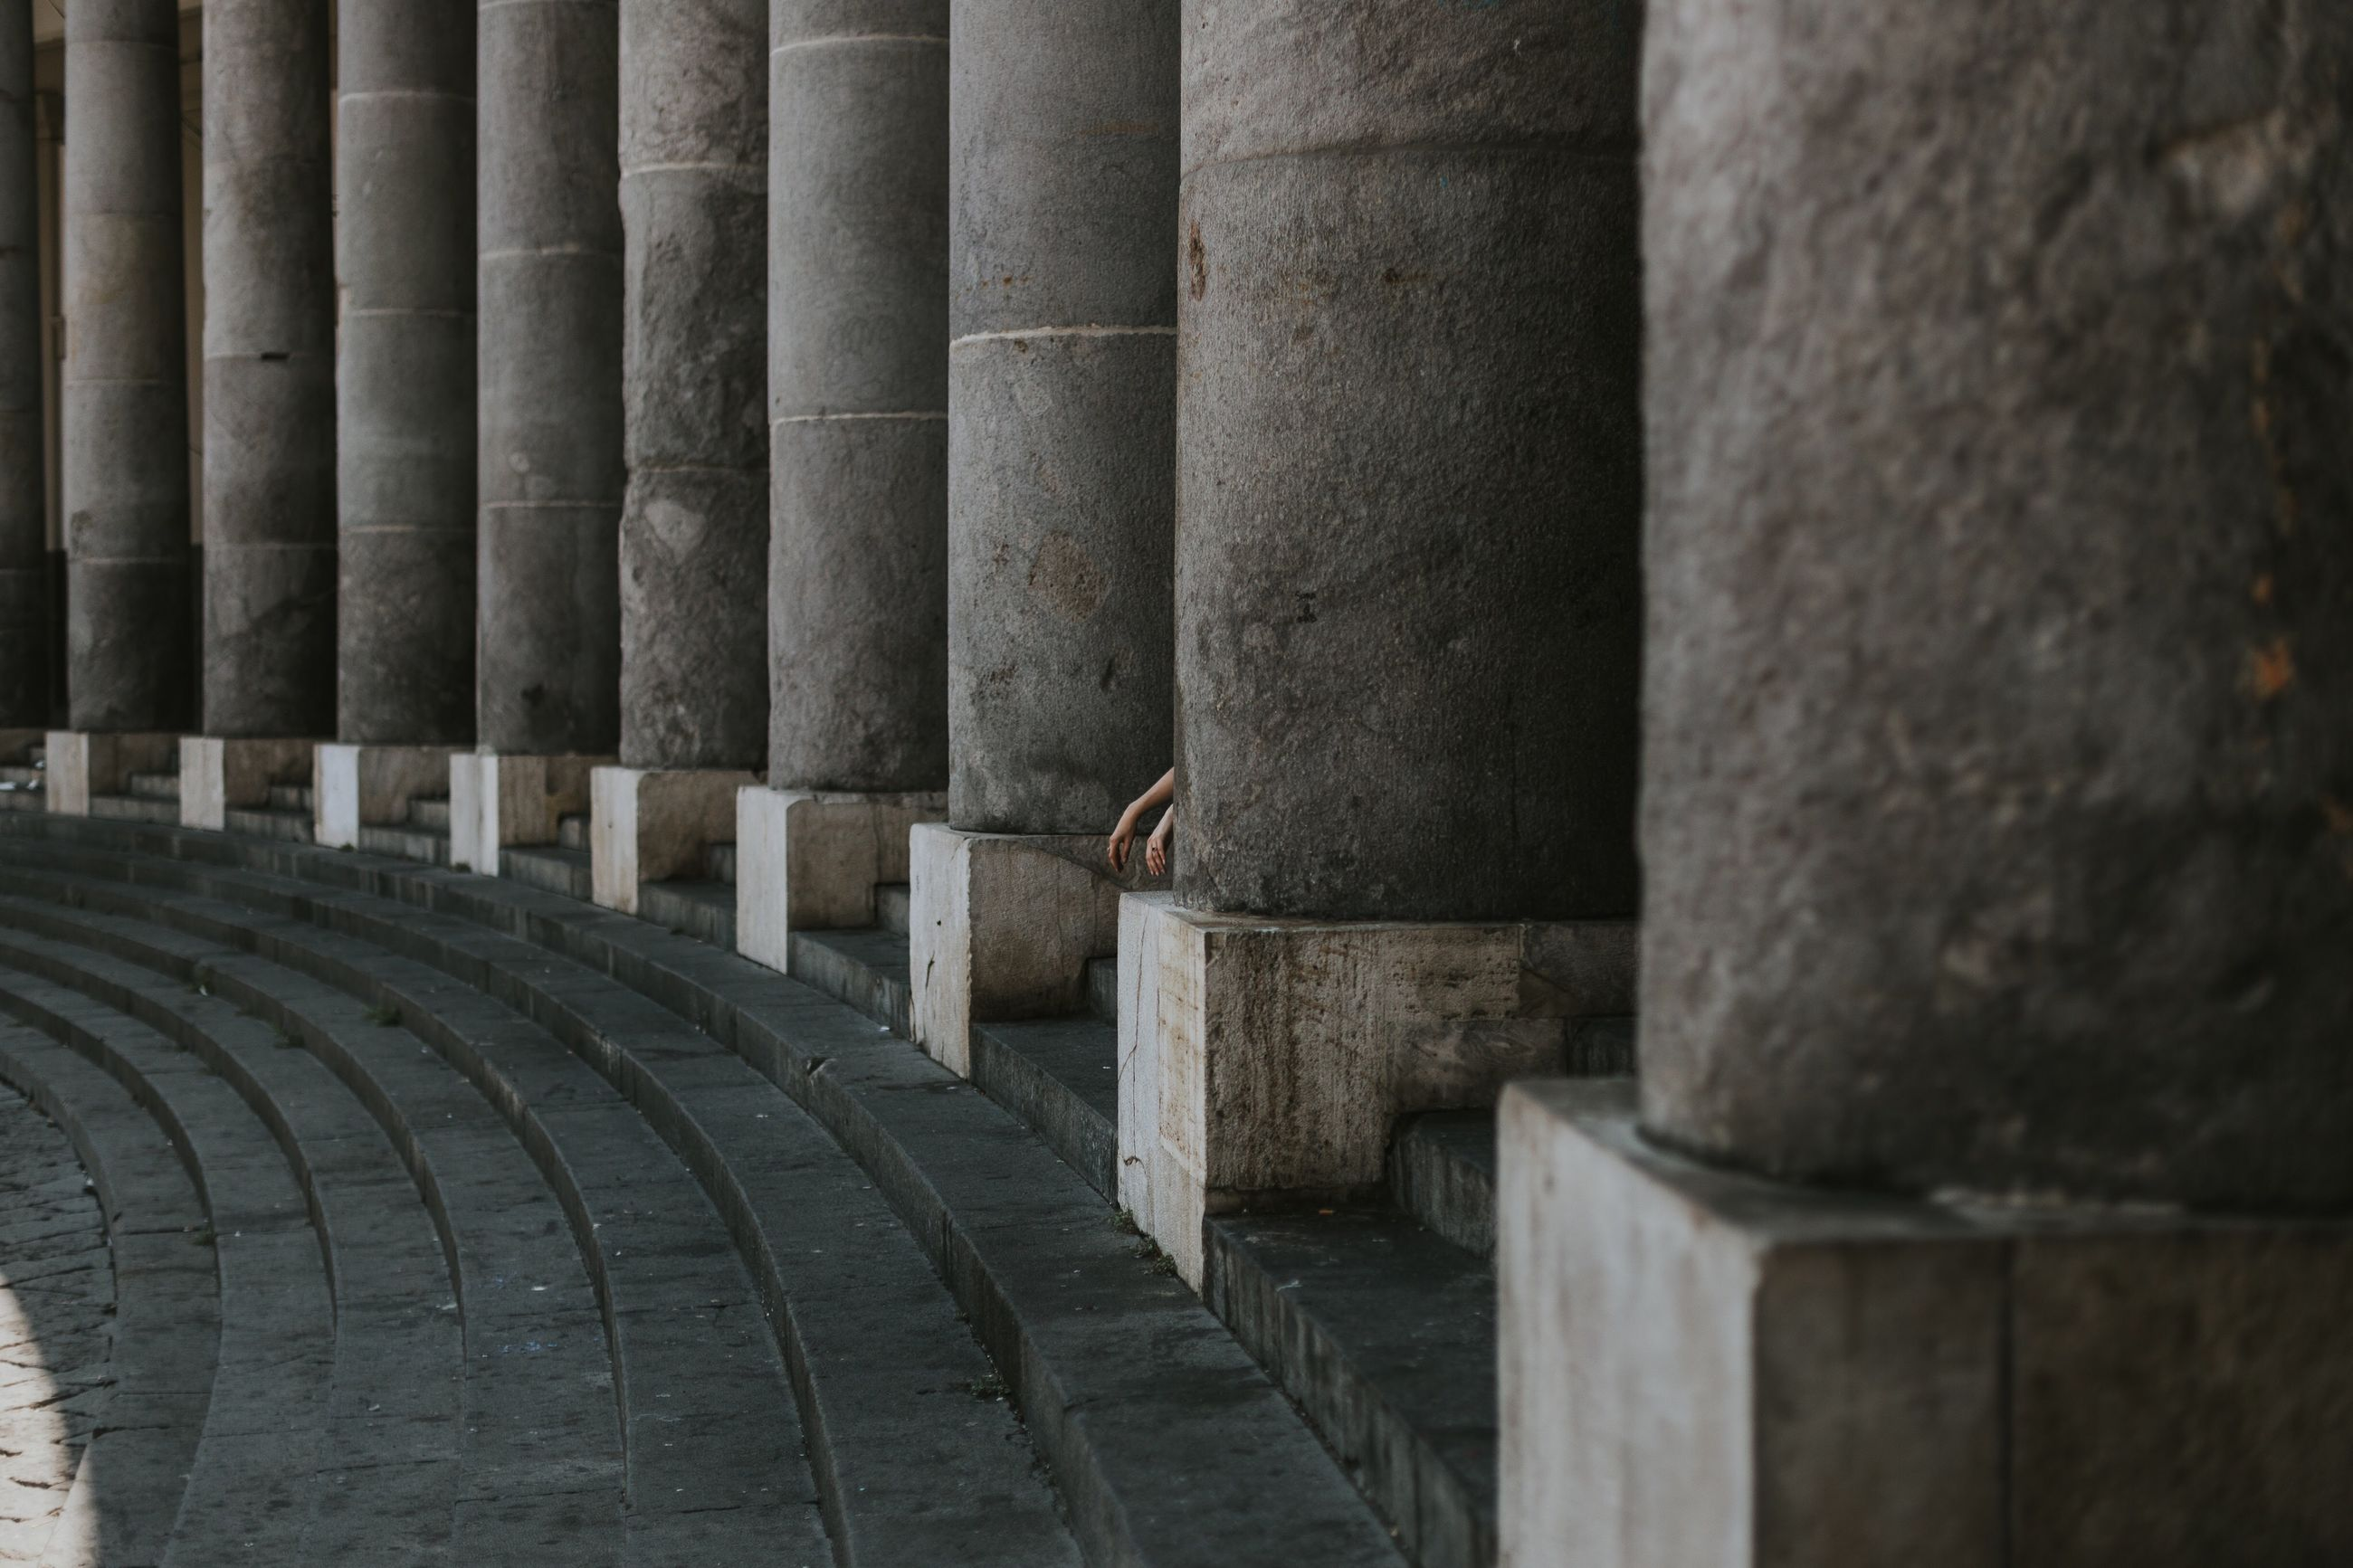 architectural column, architecture, in a row, history, built structure, real people, one person, day, ancient, outdoors, people